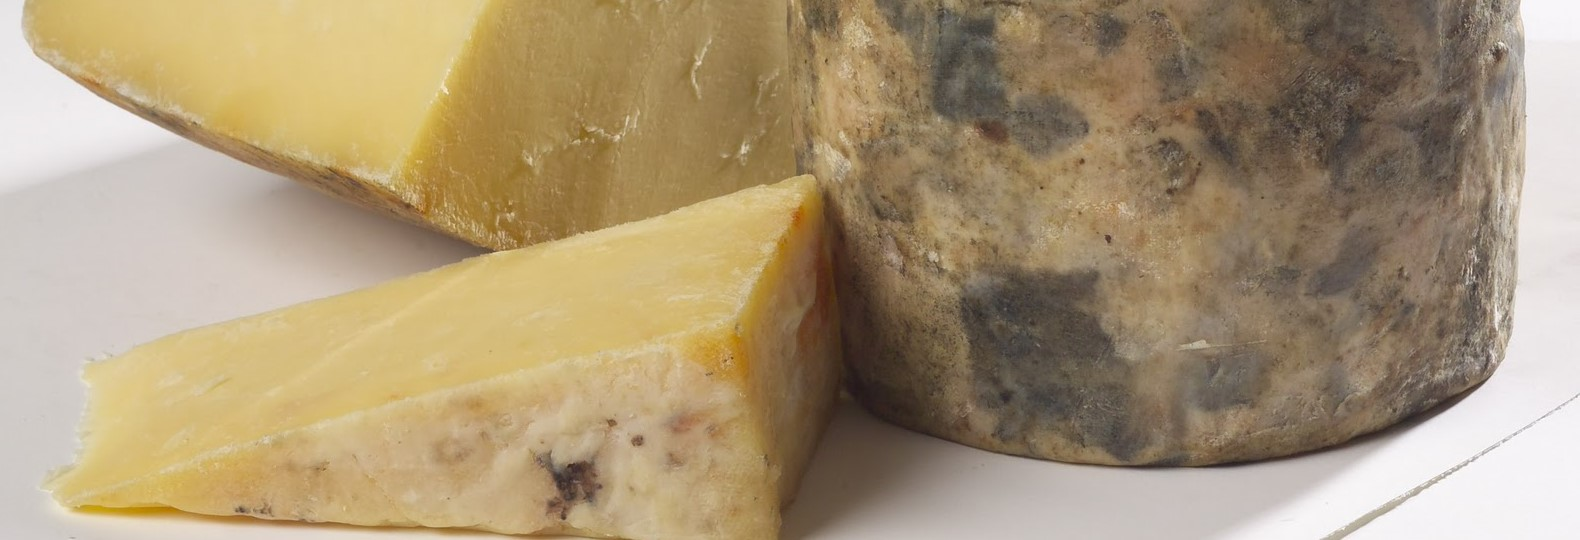 West Country Farmhouse Cheddar PDO. Foto № 1